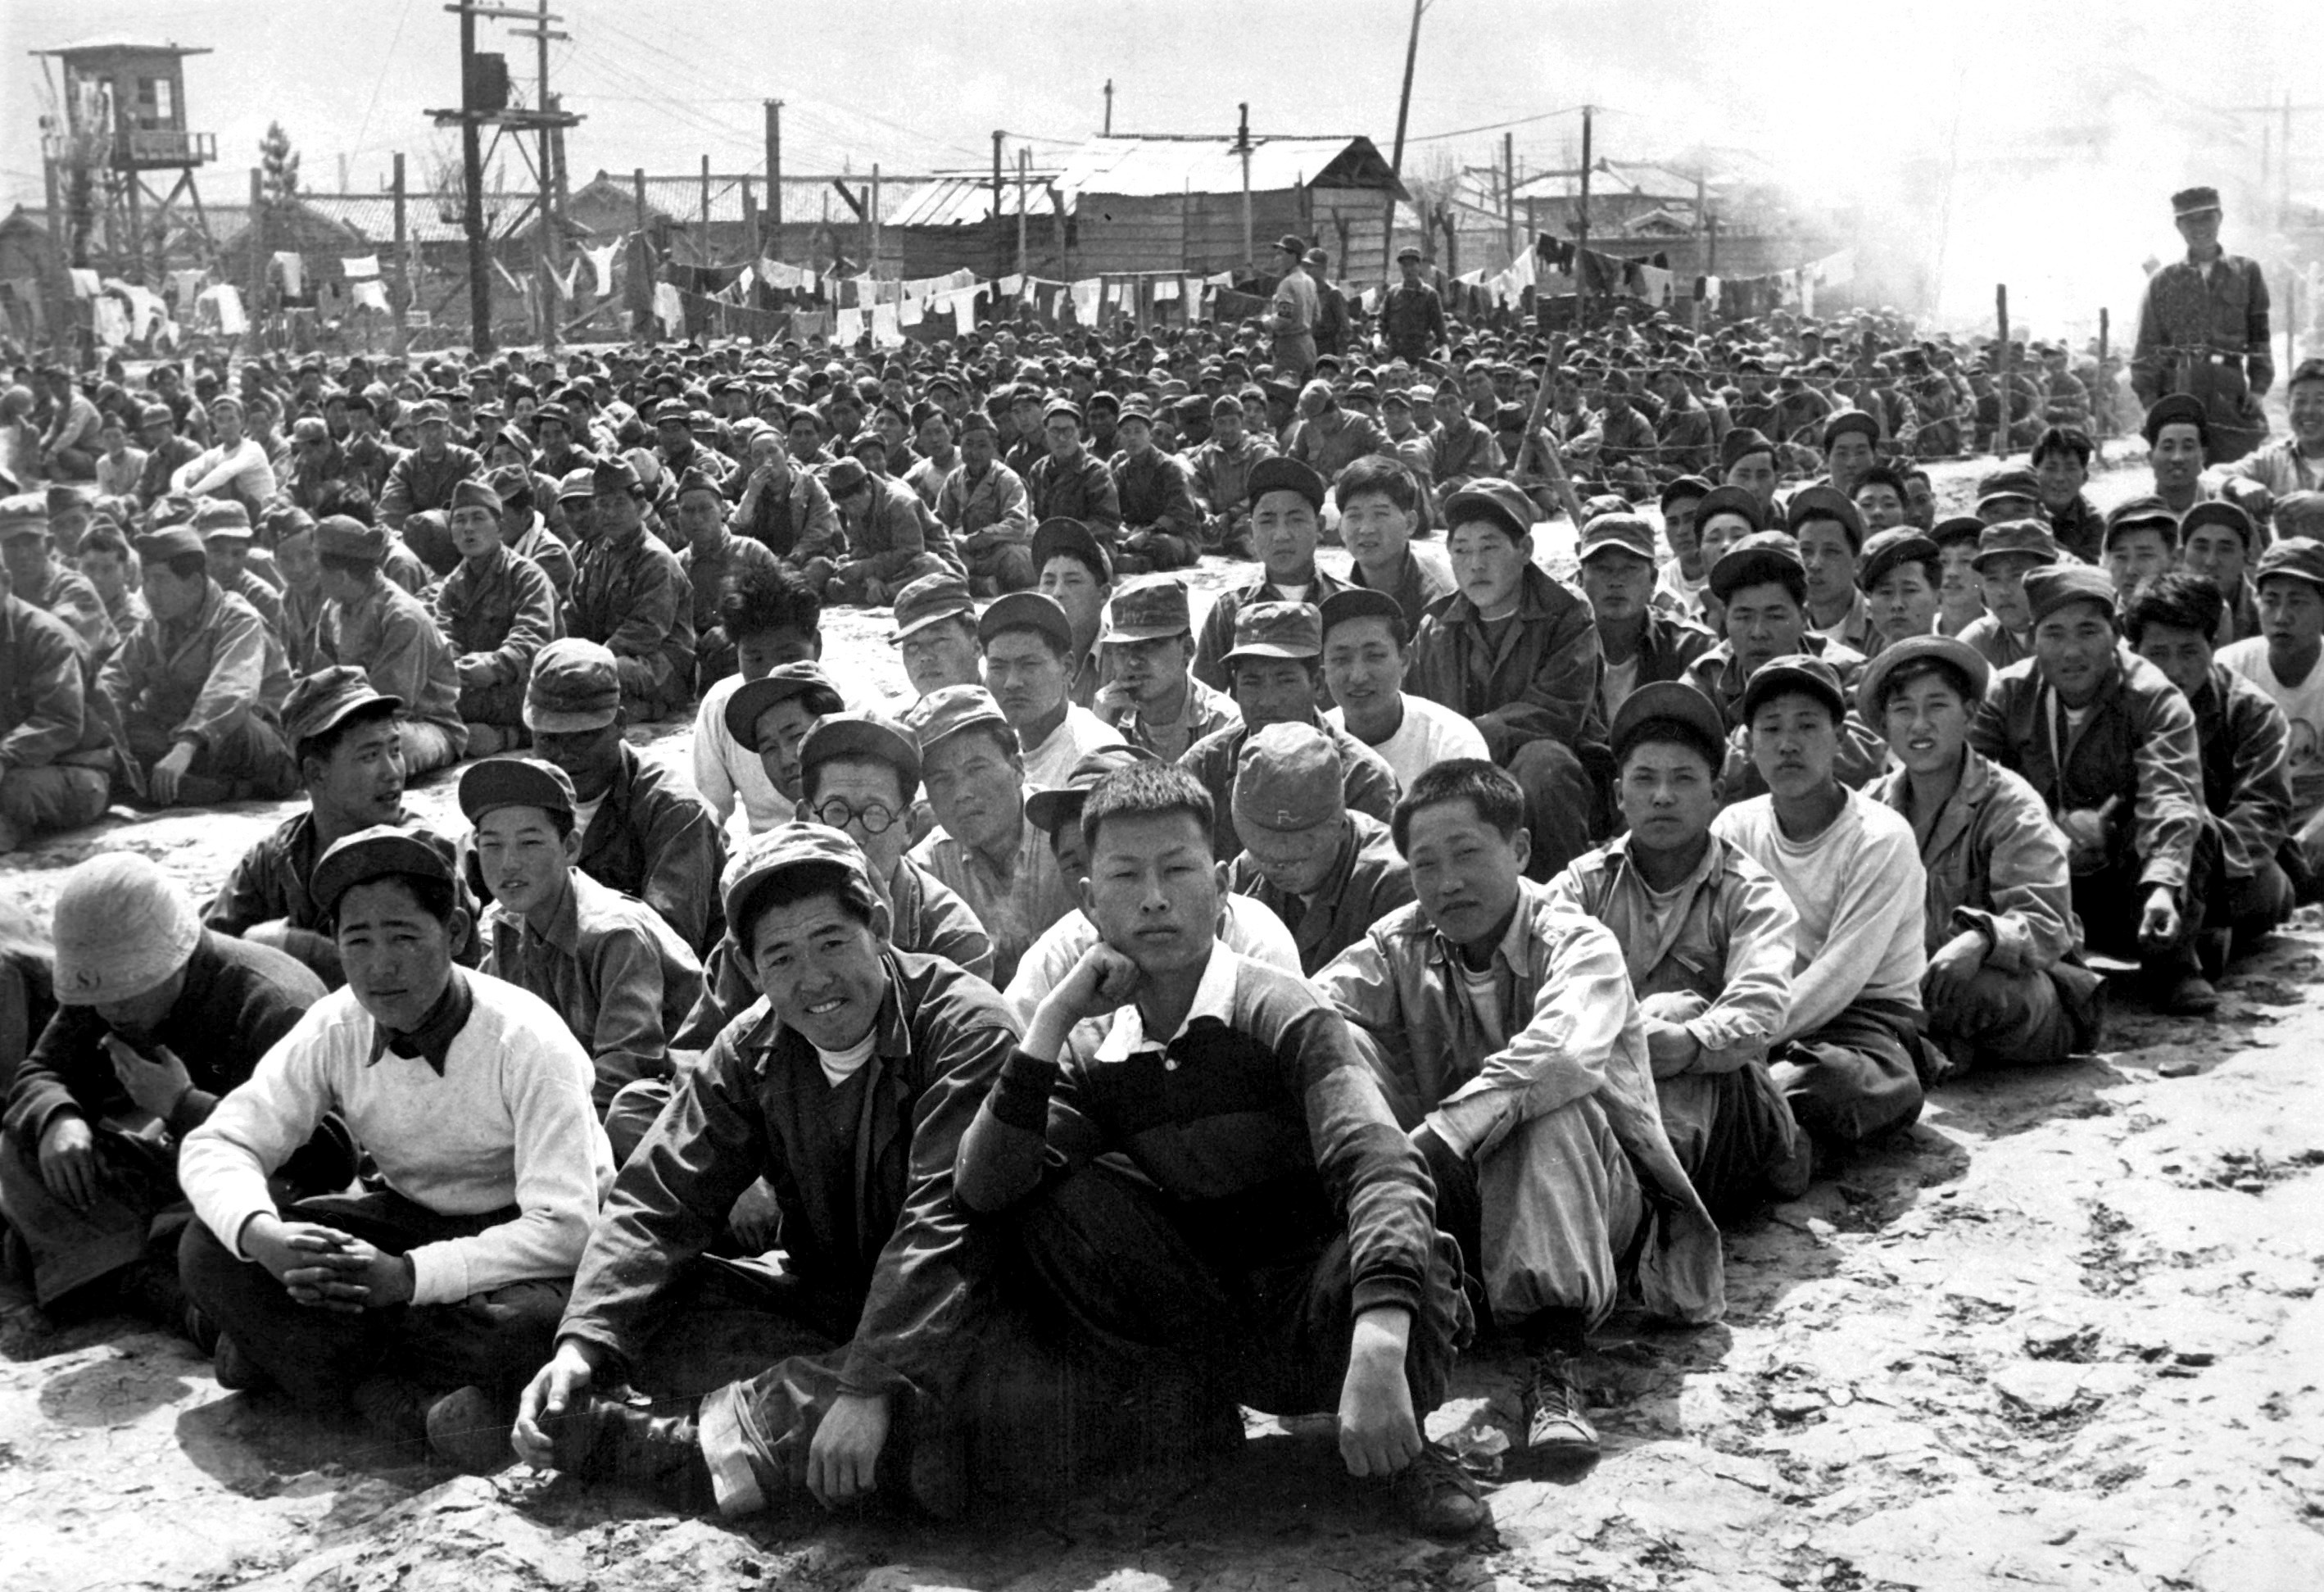 an introduction to the issue of north korean prisoner camps Political prison camps five political prison camps hold an estimated 80,000 to 120,000 people some of them are the size of cities, and they have existed five times as long as the nazi concentration camps and twice as long as the soviet gulags  many north korean women who escape north korea become victims of sex trafficking china's lack.